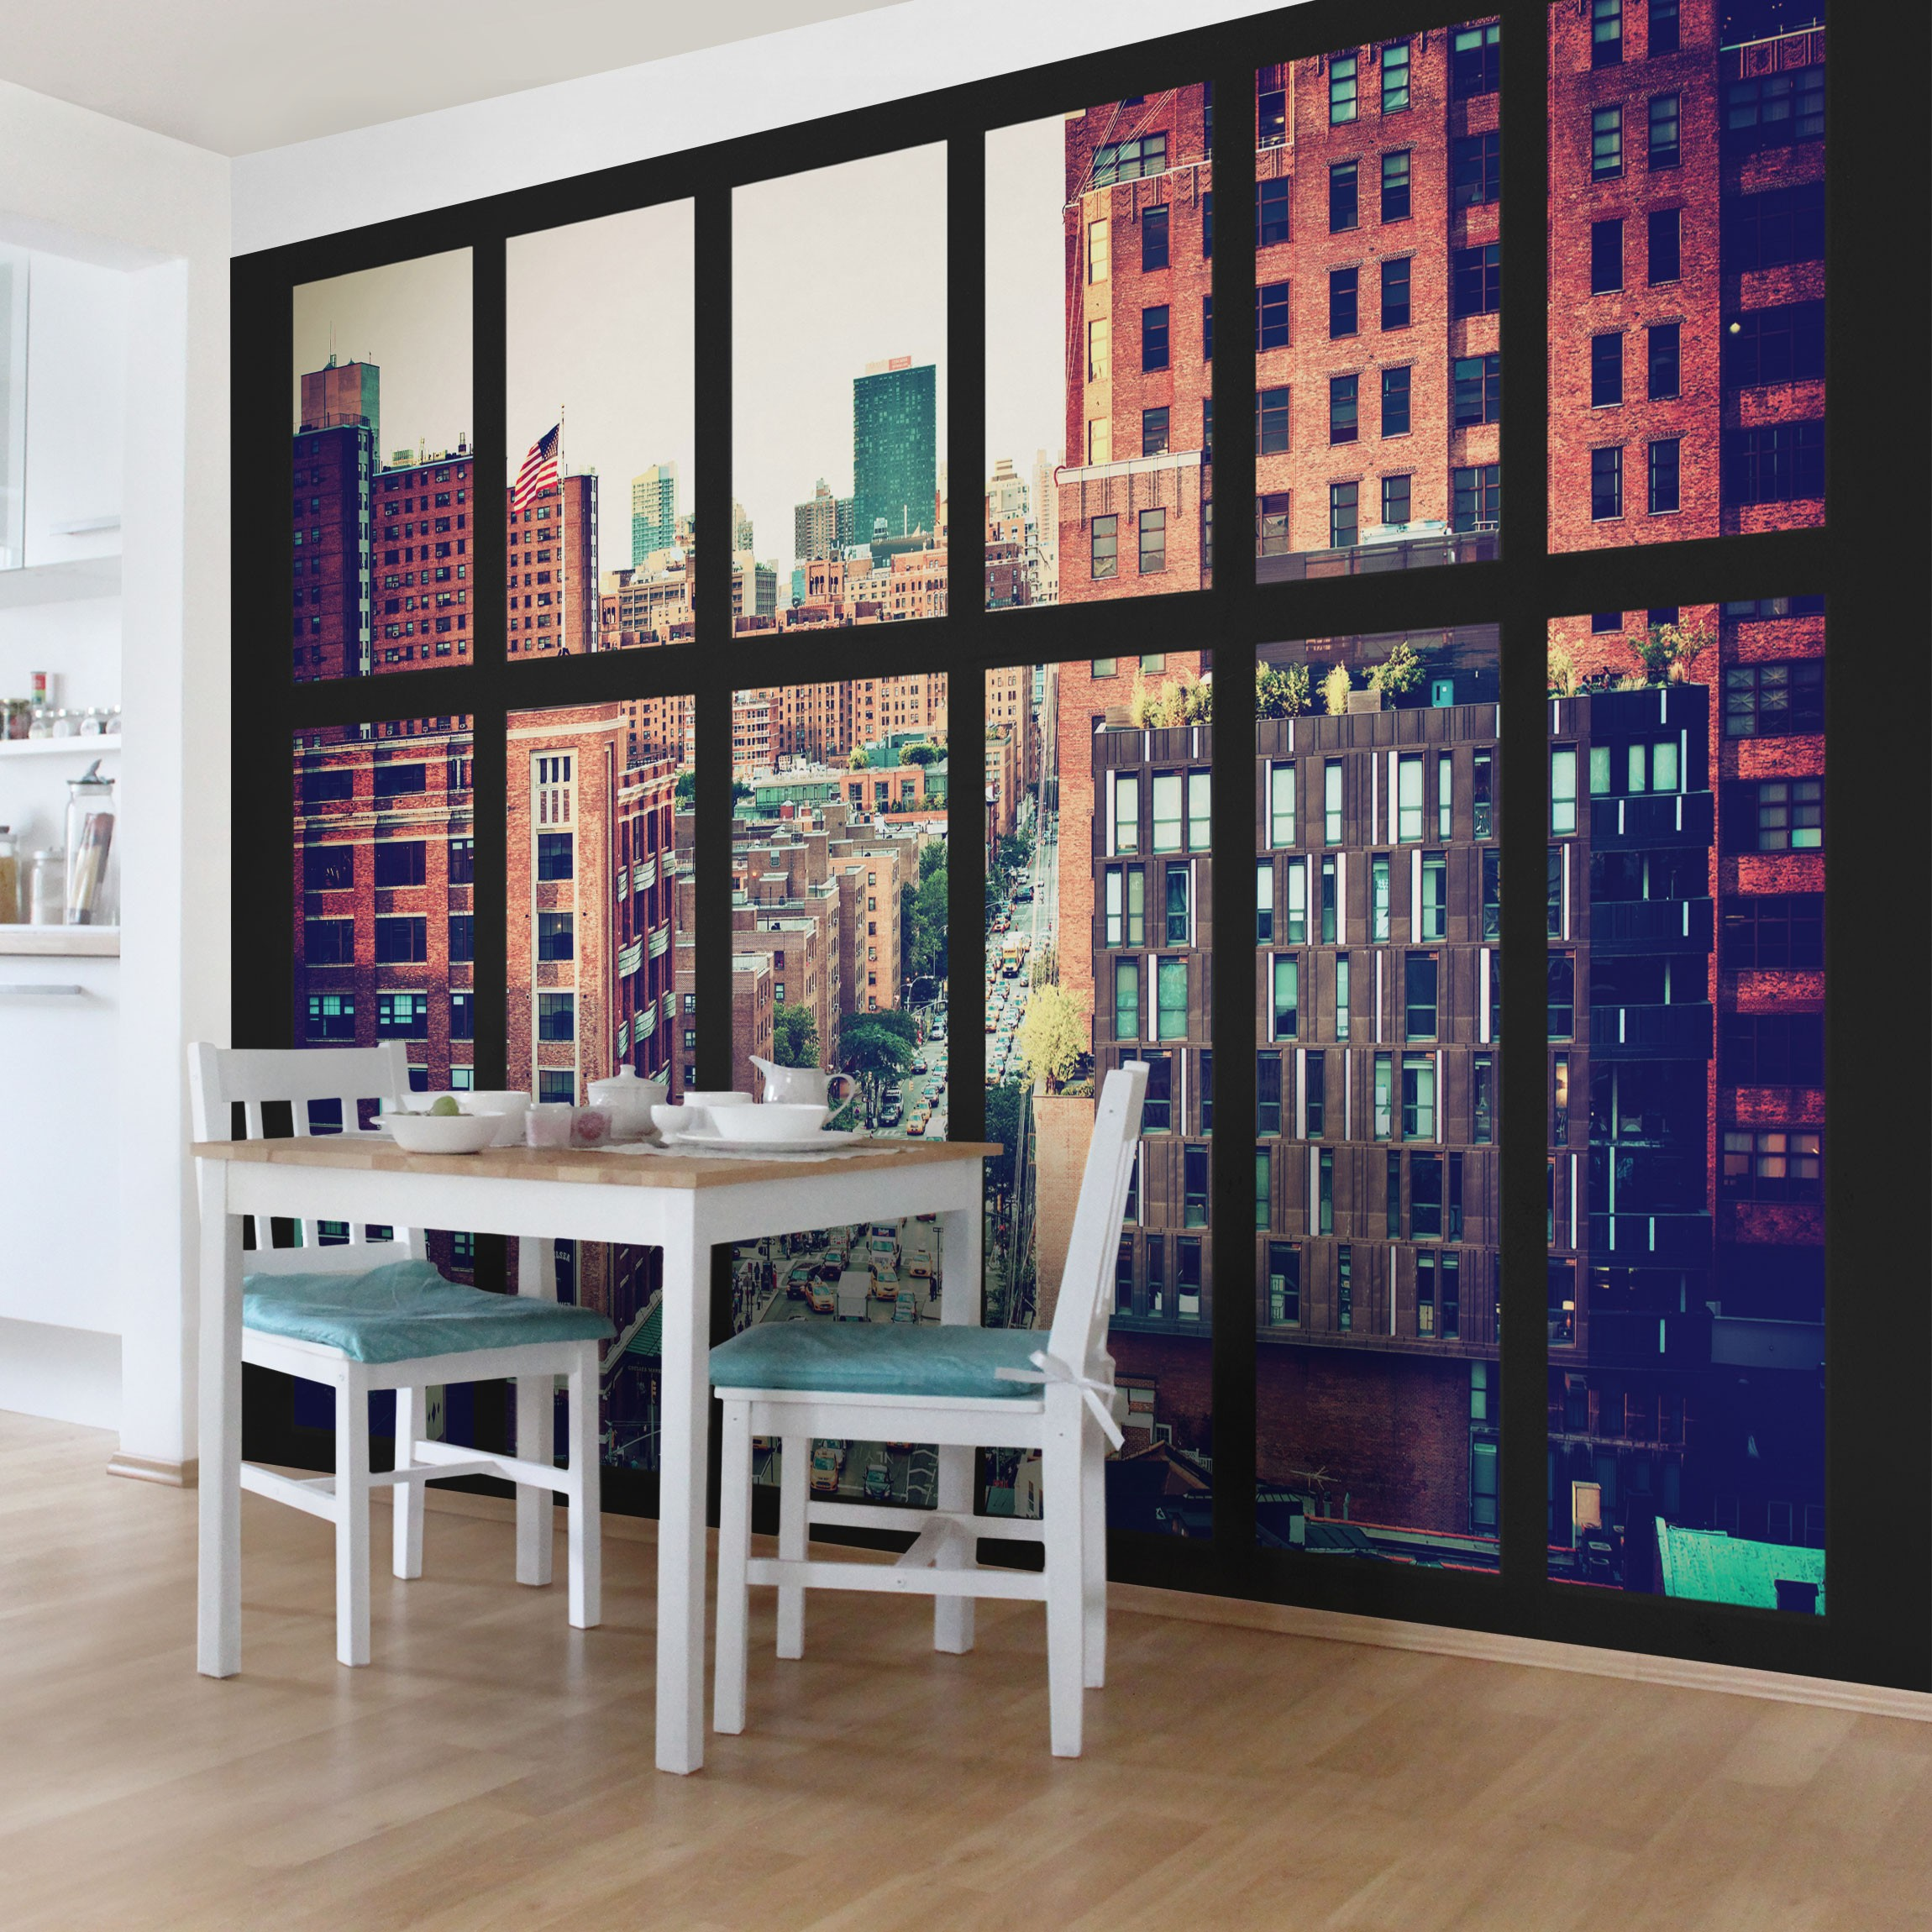 selbstklebende tapete fototapete new york fensterblick iii. Black Bedroom Furniture Sets. Home Design Ideas